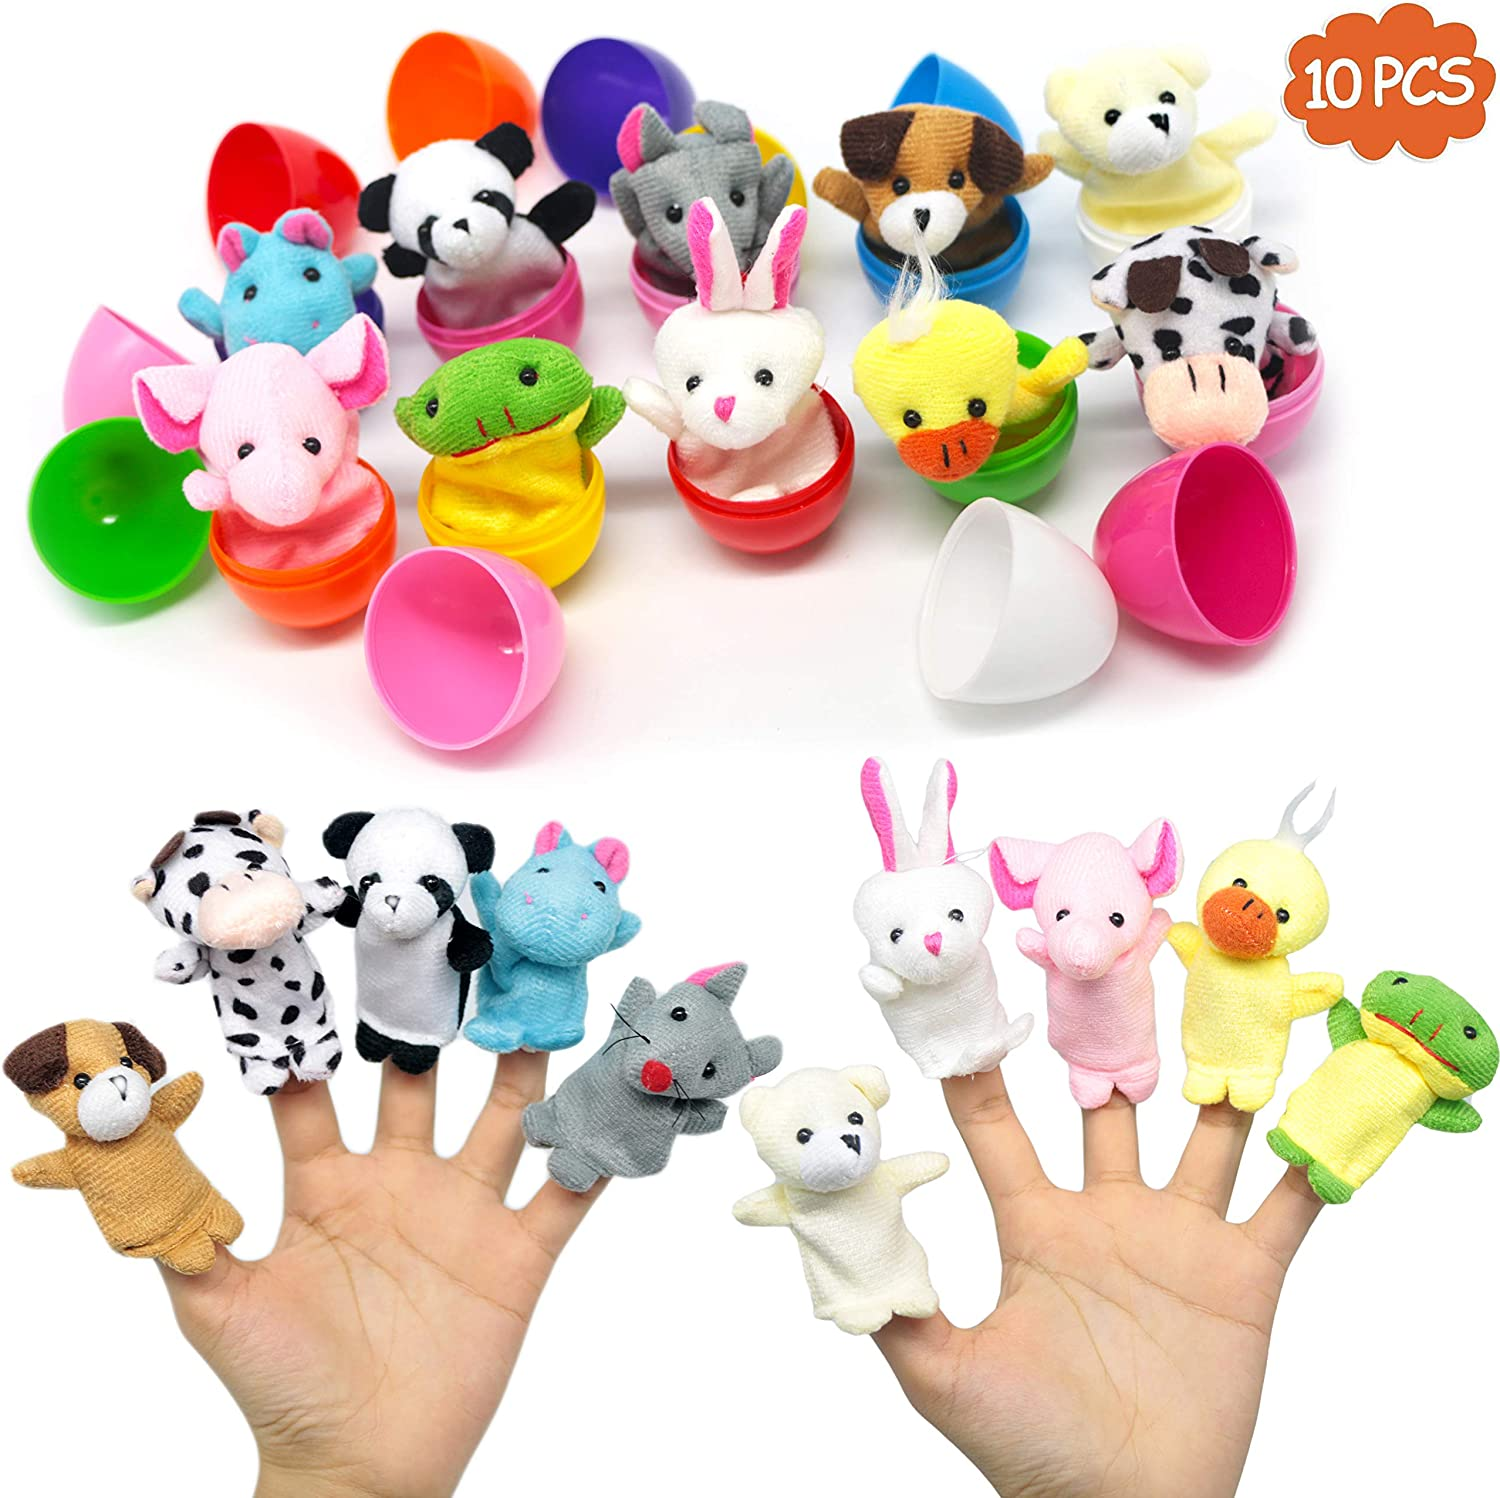 Happy Easter Bunny Kids Gift Variety of Candy Stuffers and Plush Toy 7 Inch